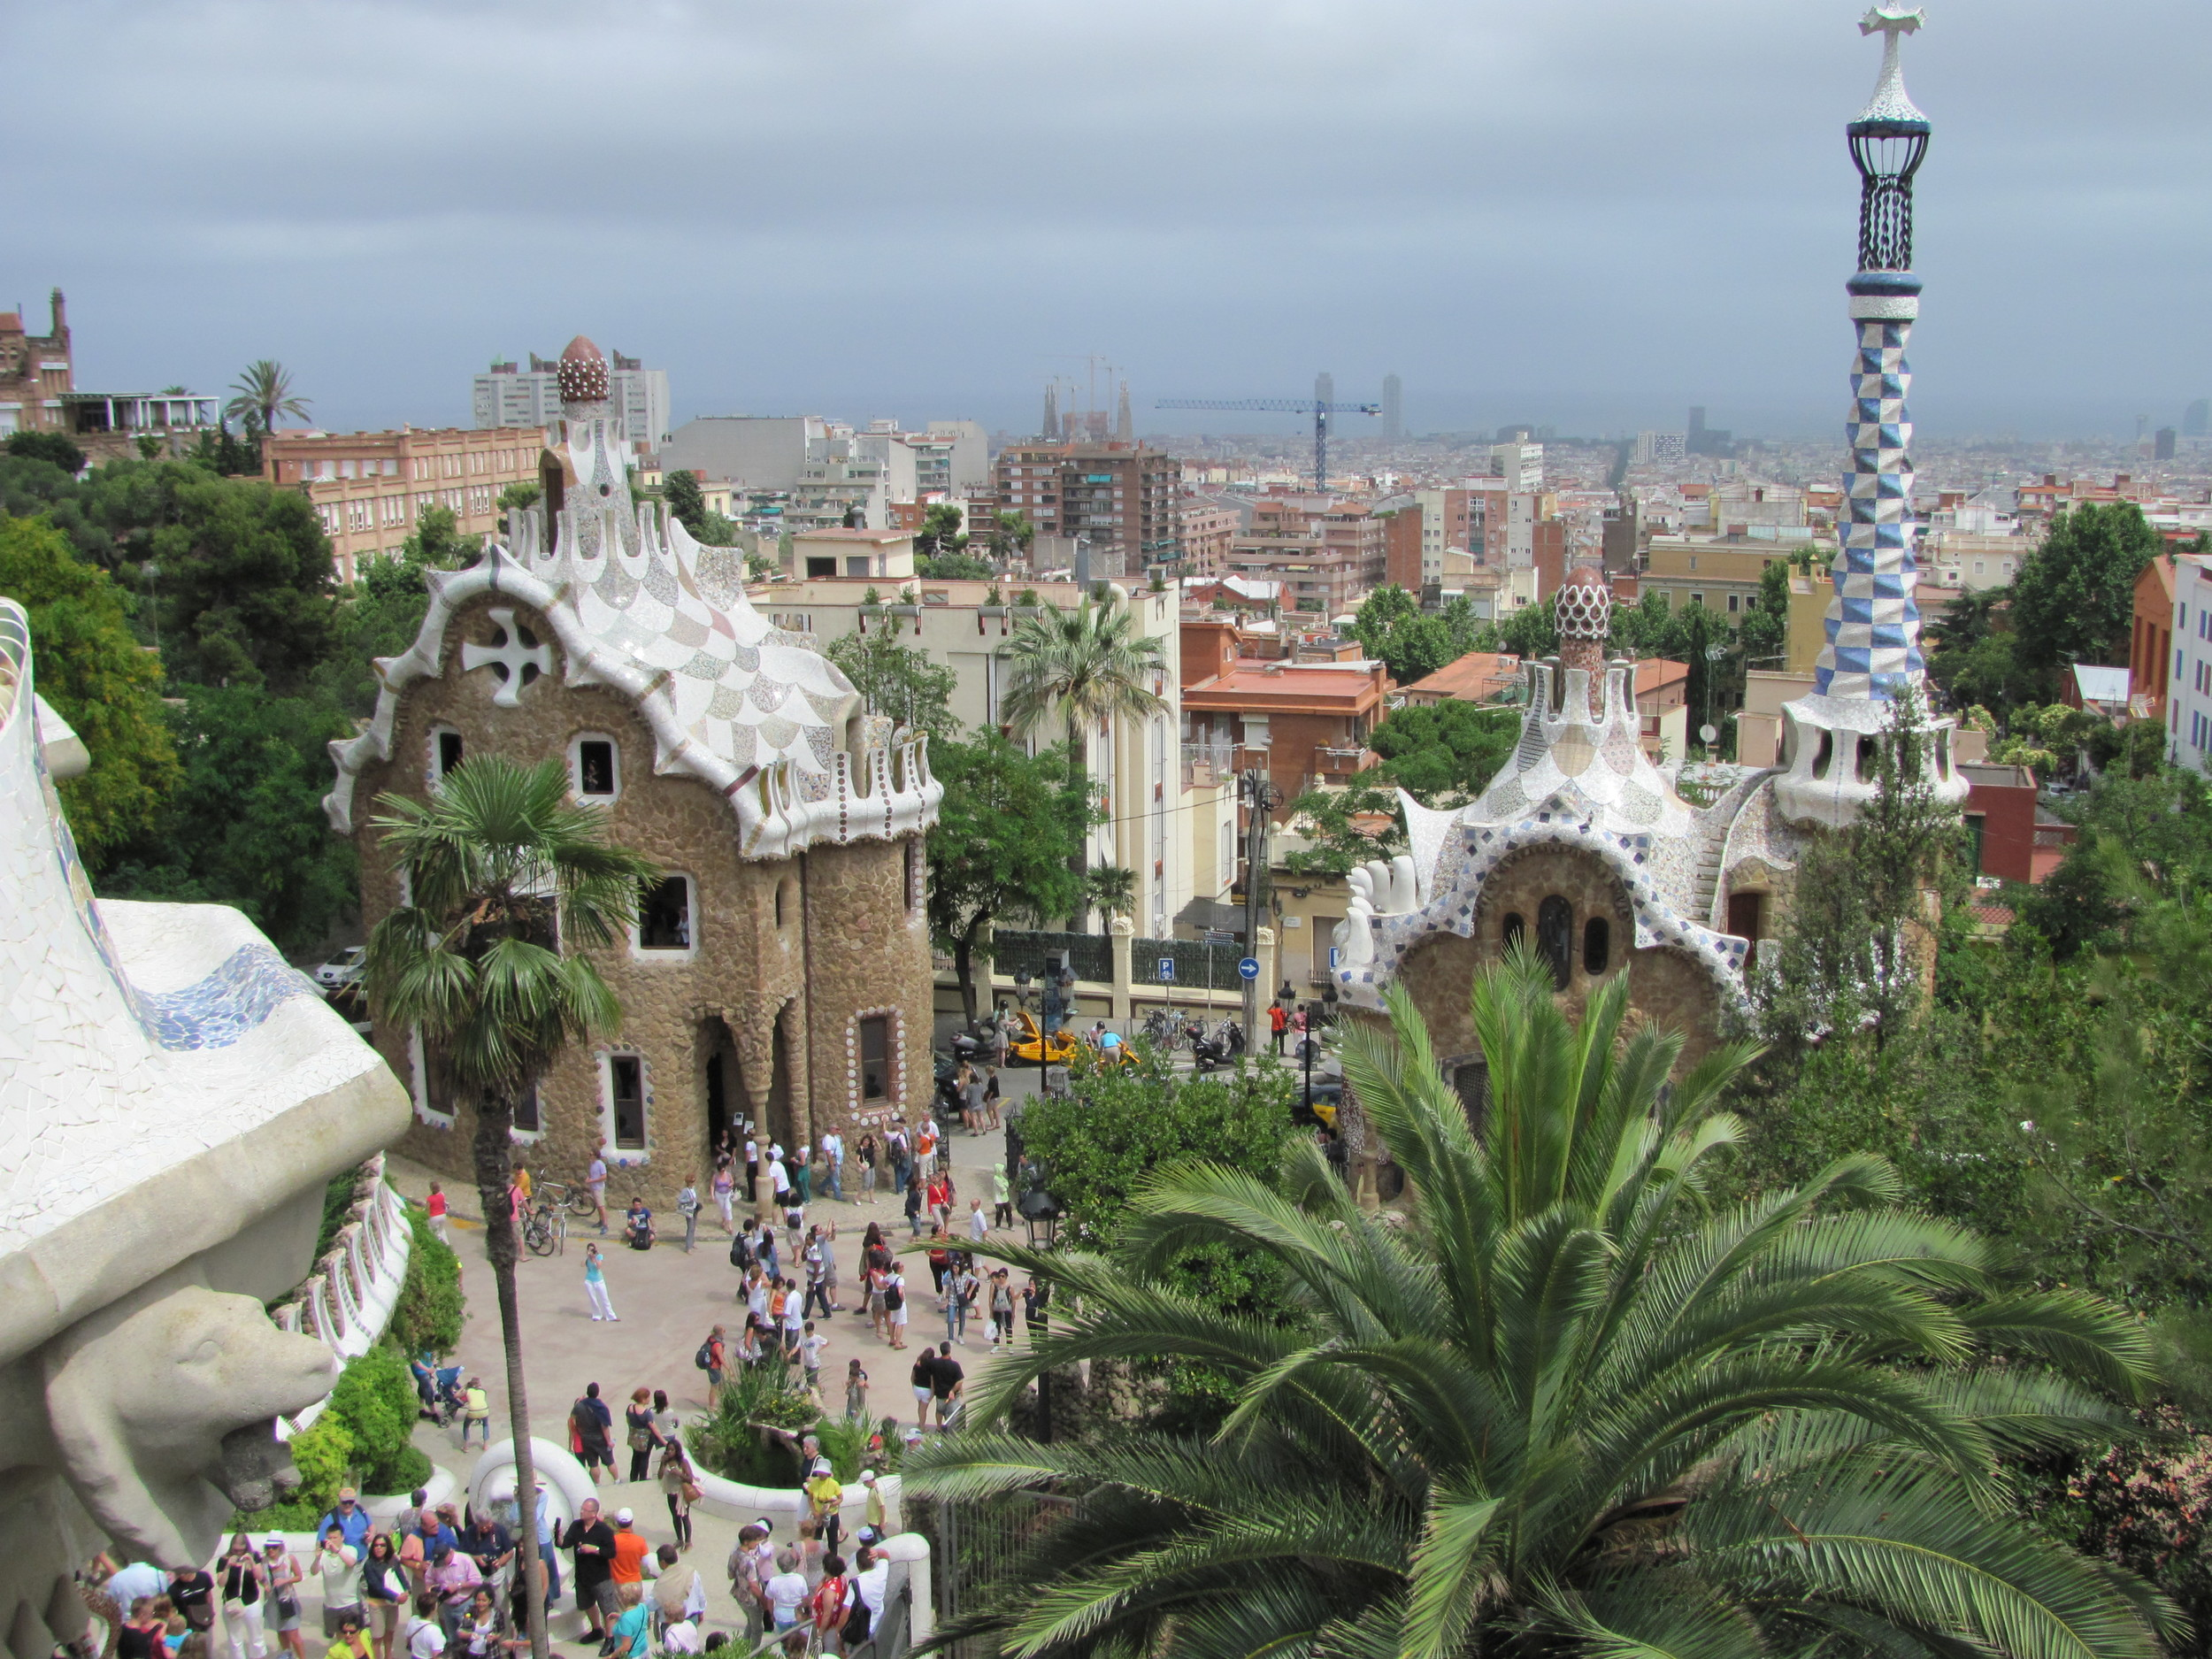 Park Güell  is like stepping into a Hans Christian Anderson story..with Gaudi's quirky architecture and the use of broken tiles creating the most stunning mosaic patterns and sculpture..a visit is a must - even though it is extremely popular..